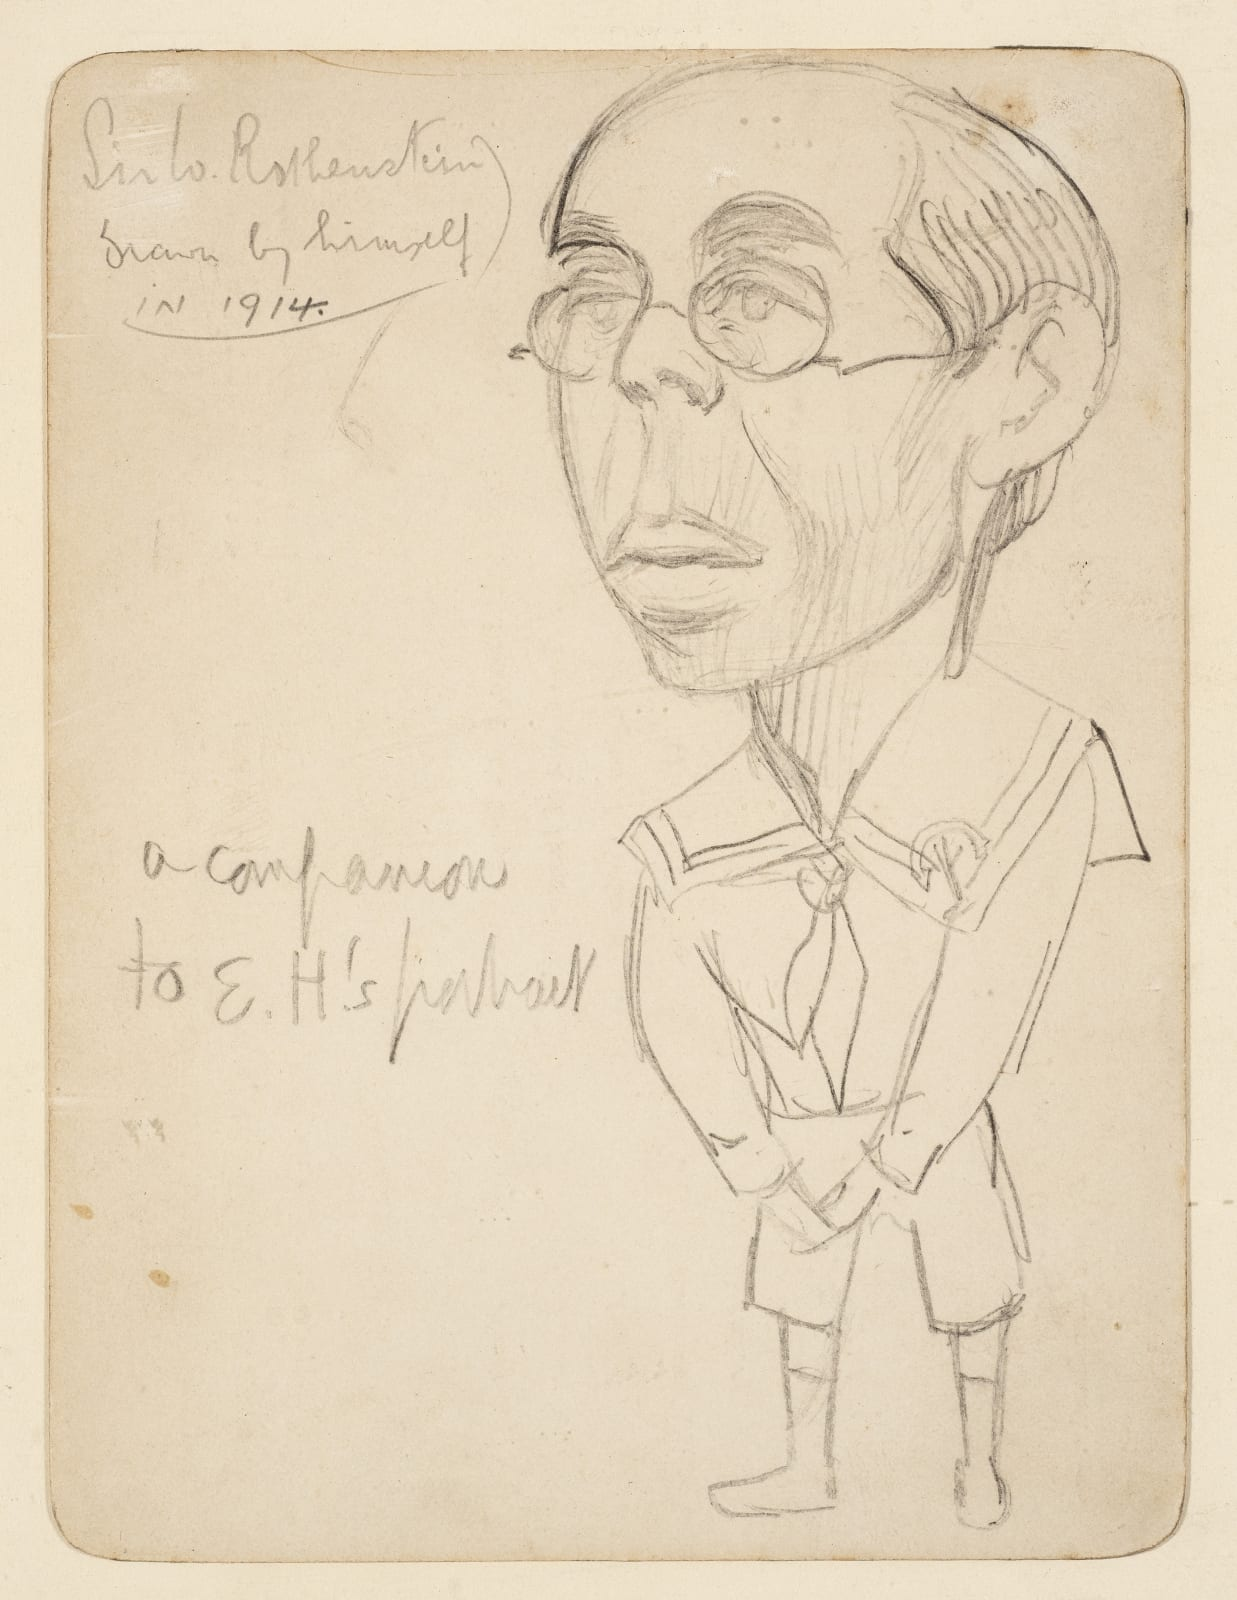 William Rothenstein (1872-1945) Self Portrait 1914 Pencil on paper 15.24 x 11.43 cm Ben Uri Collection To see and discover more about this artist click here